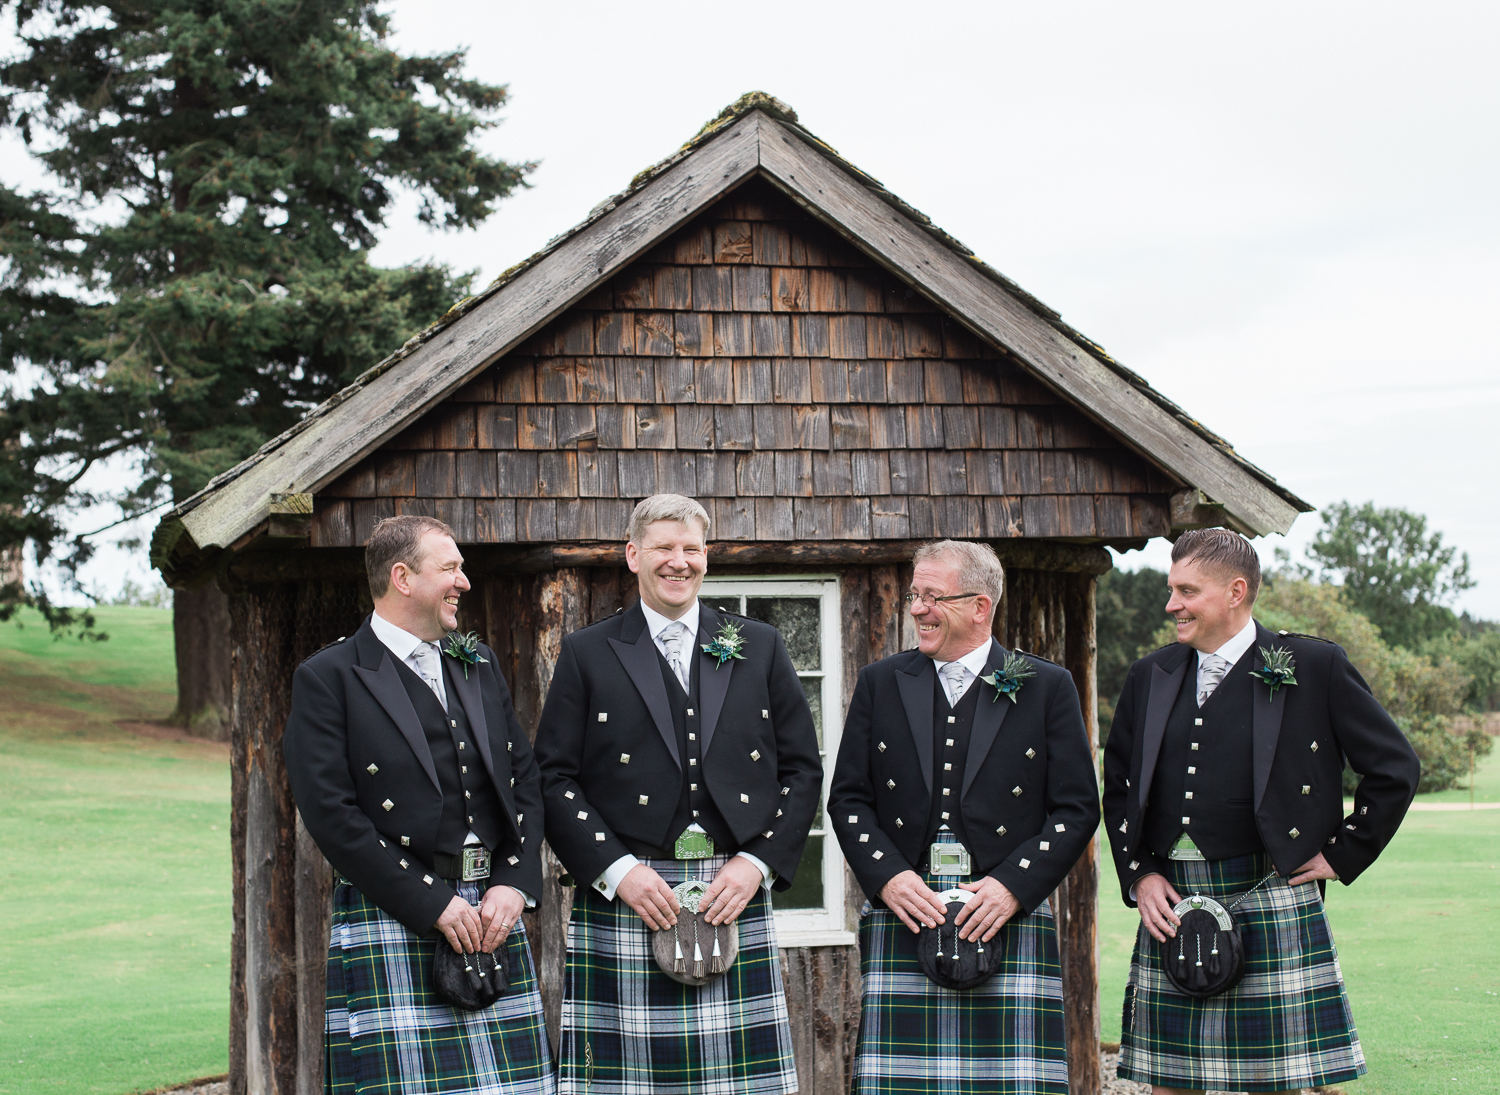 Scottish wedding photographer, wedding photographer Scotland, Aberdeenshire wedding